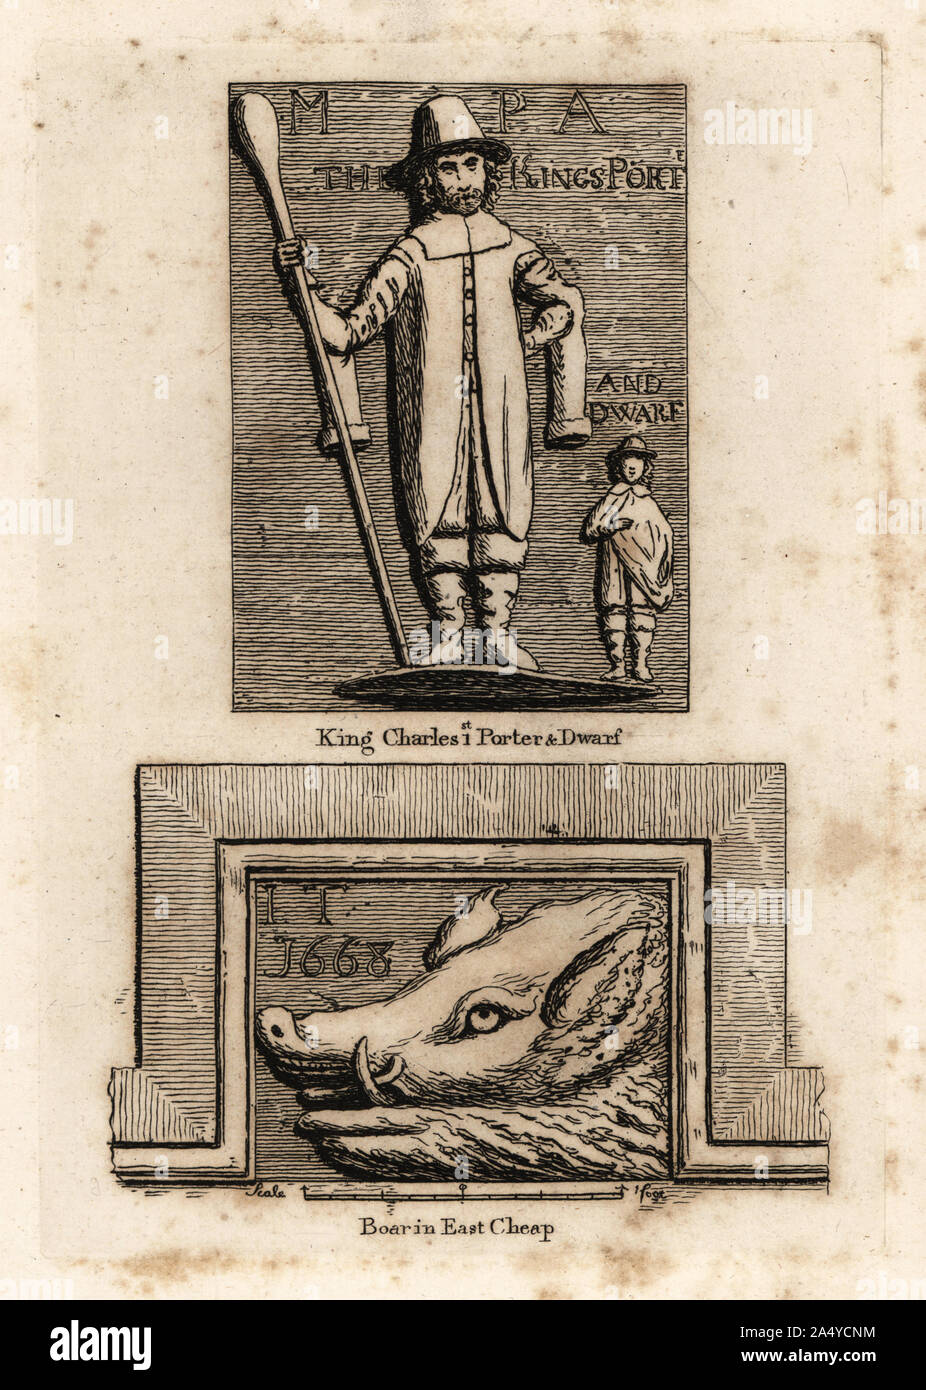 Stone sculpture of William Evans, giant porter, and Jeffry Hudson, dwarf to King Charles I. Located over Bagnio Court in Newgate Street, London. And sculpture of a boar in East Cheap. Stock Photo